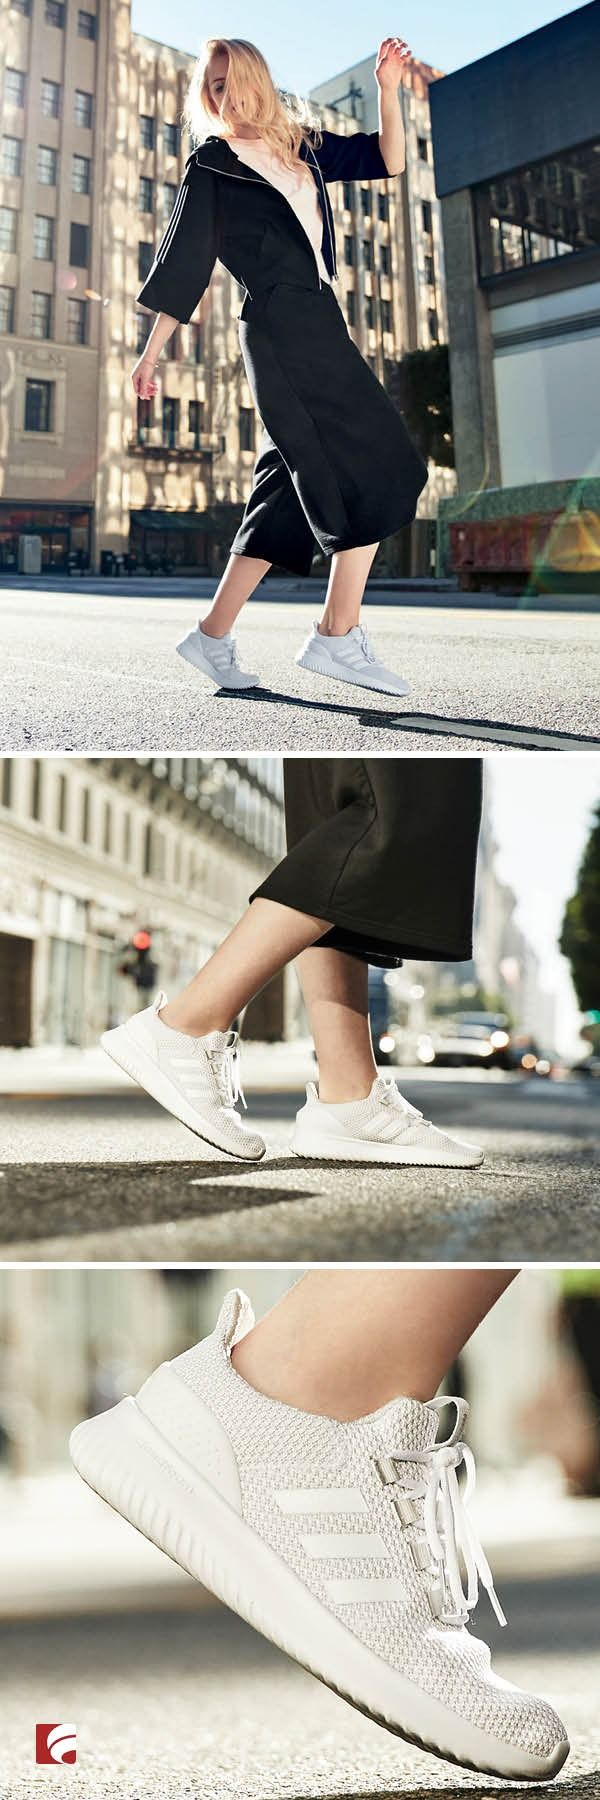 adidas cloudfoam ultimate ladies trainers